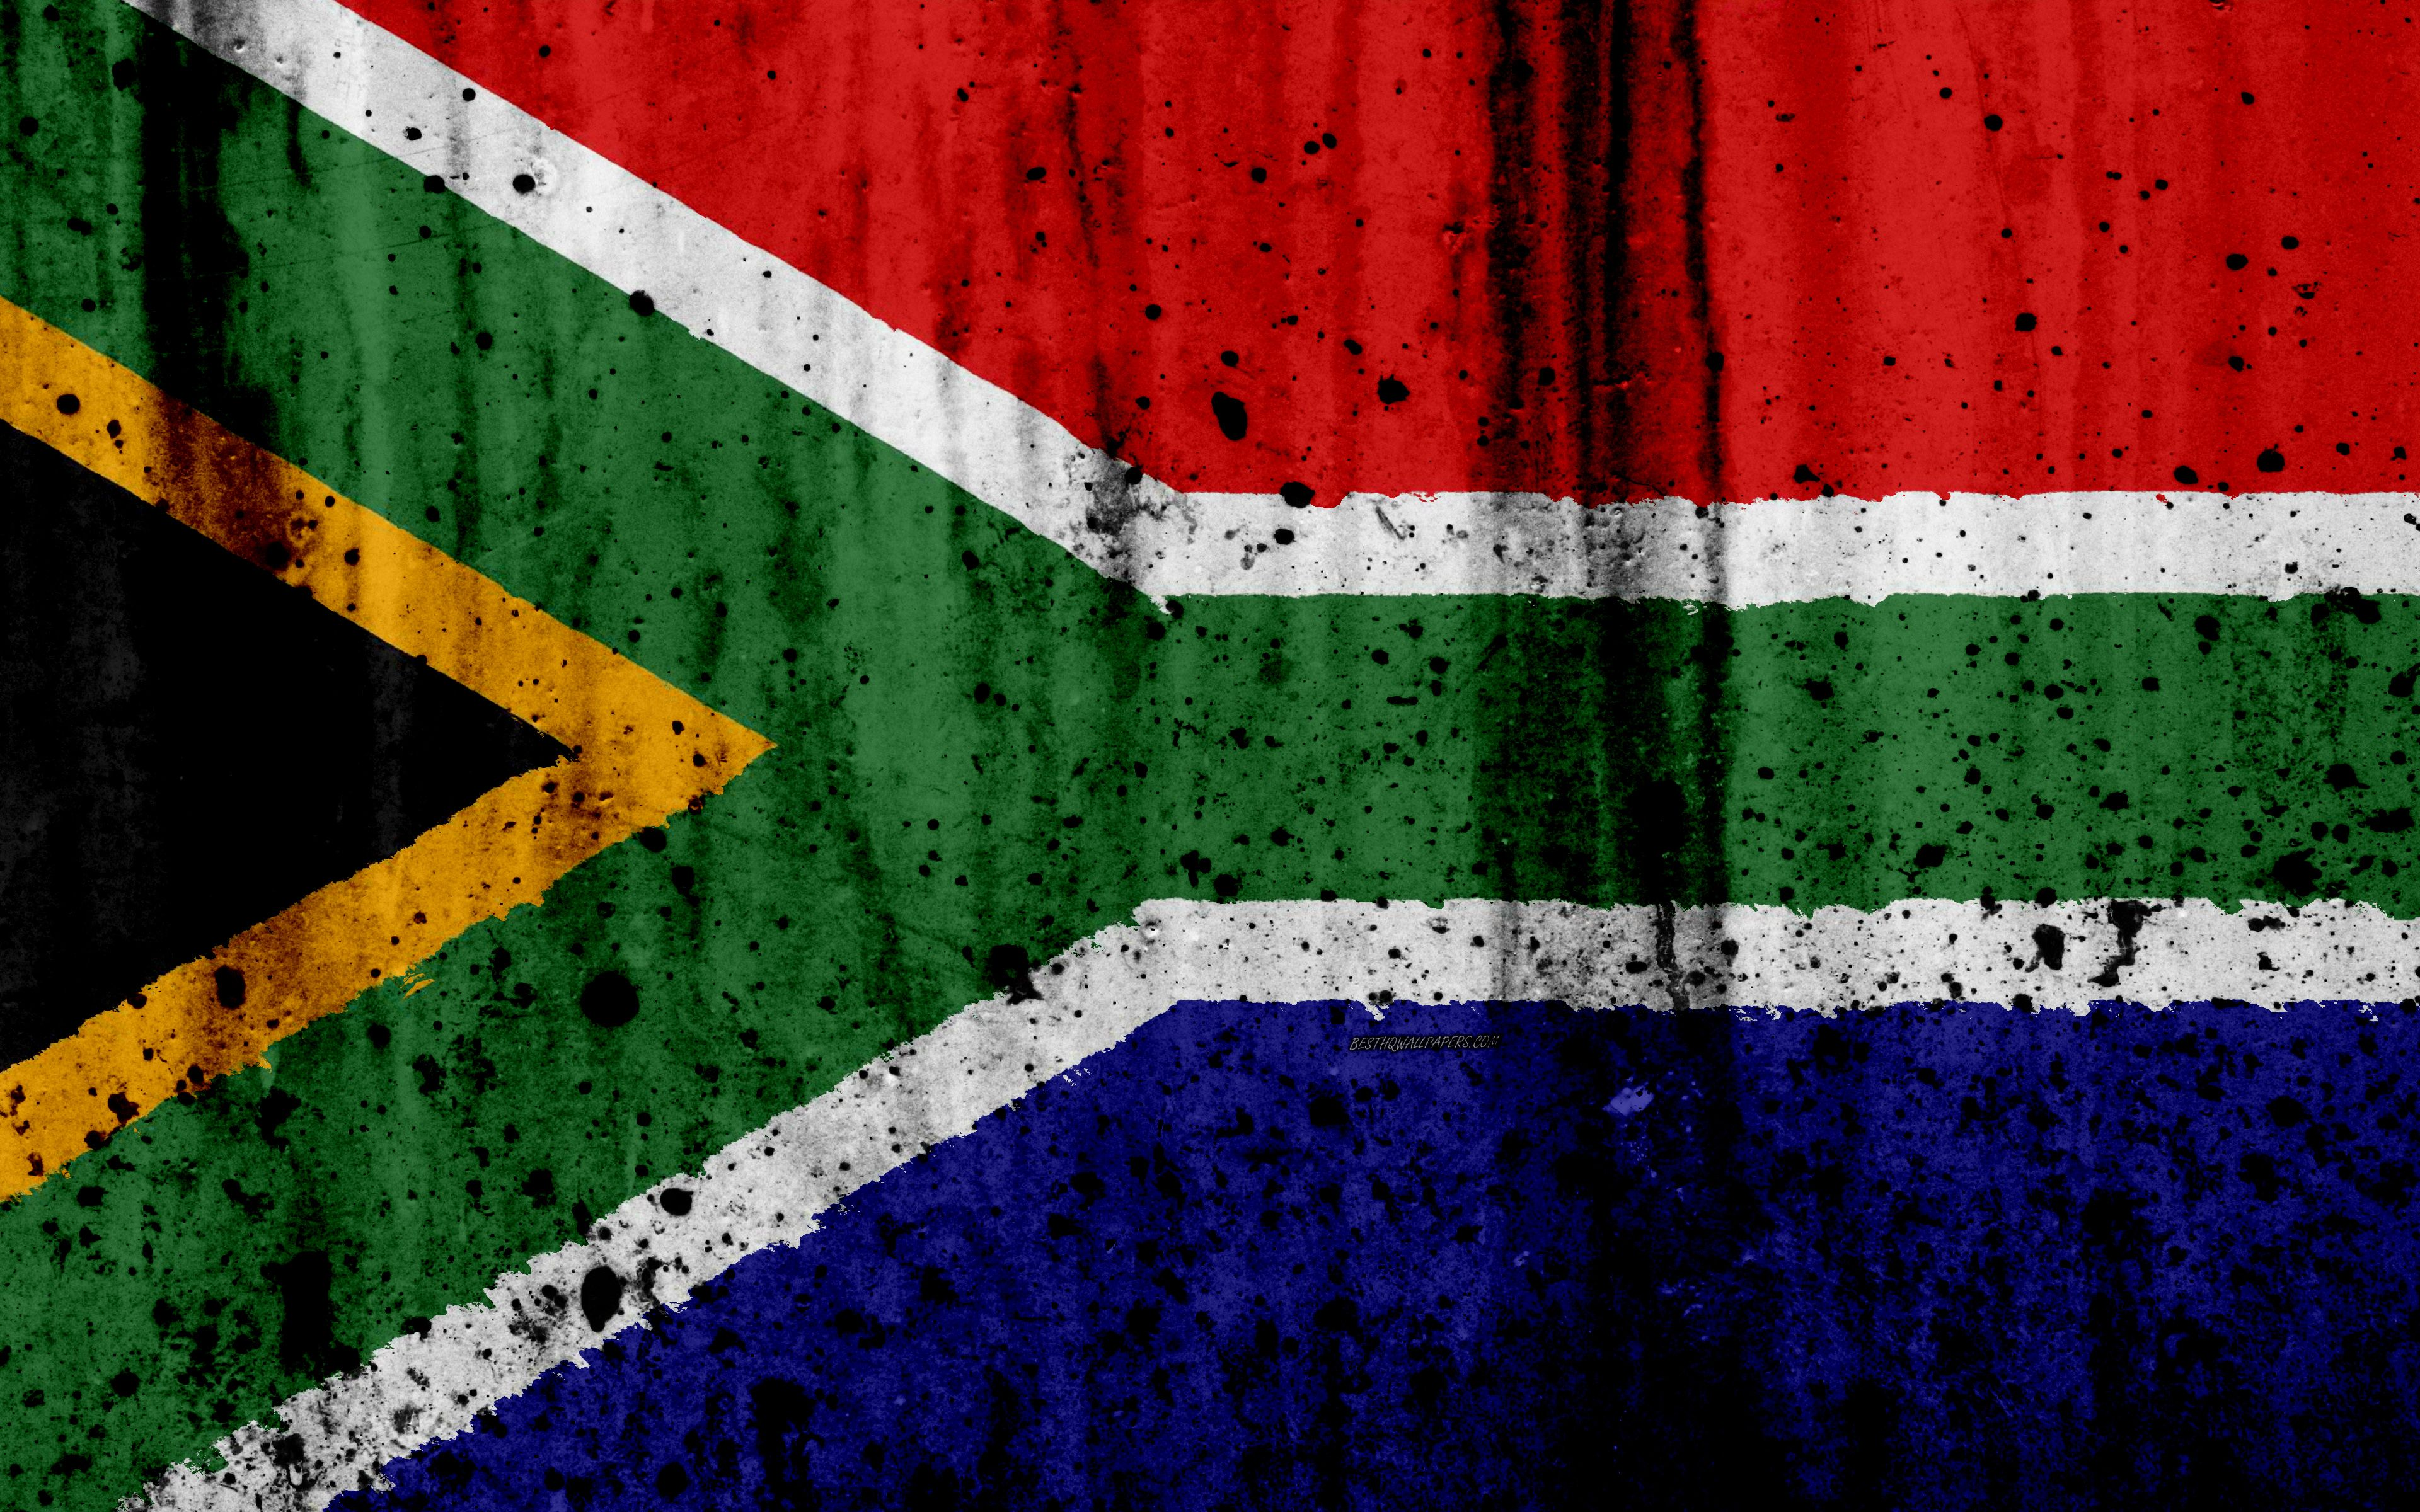 3840x2400 Download wallpapers South African flag, 4k, grunge, flag of ...